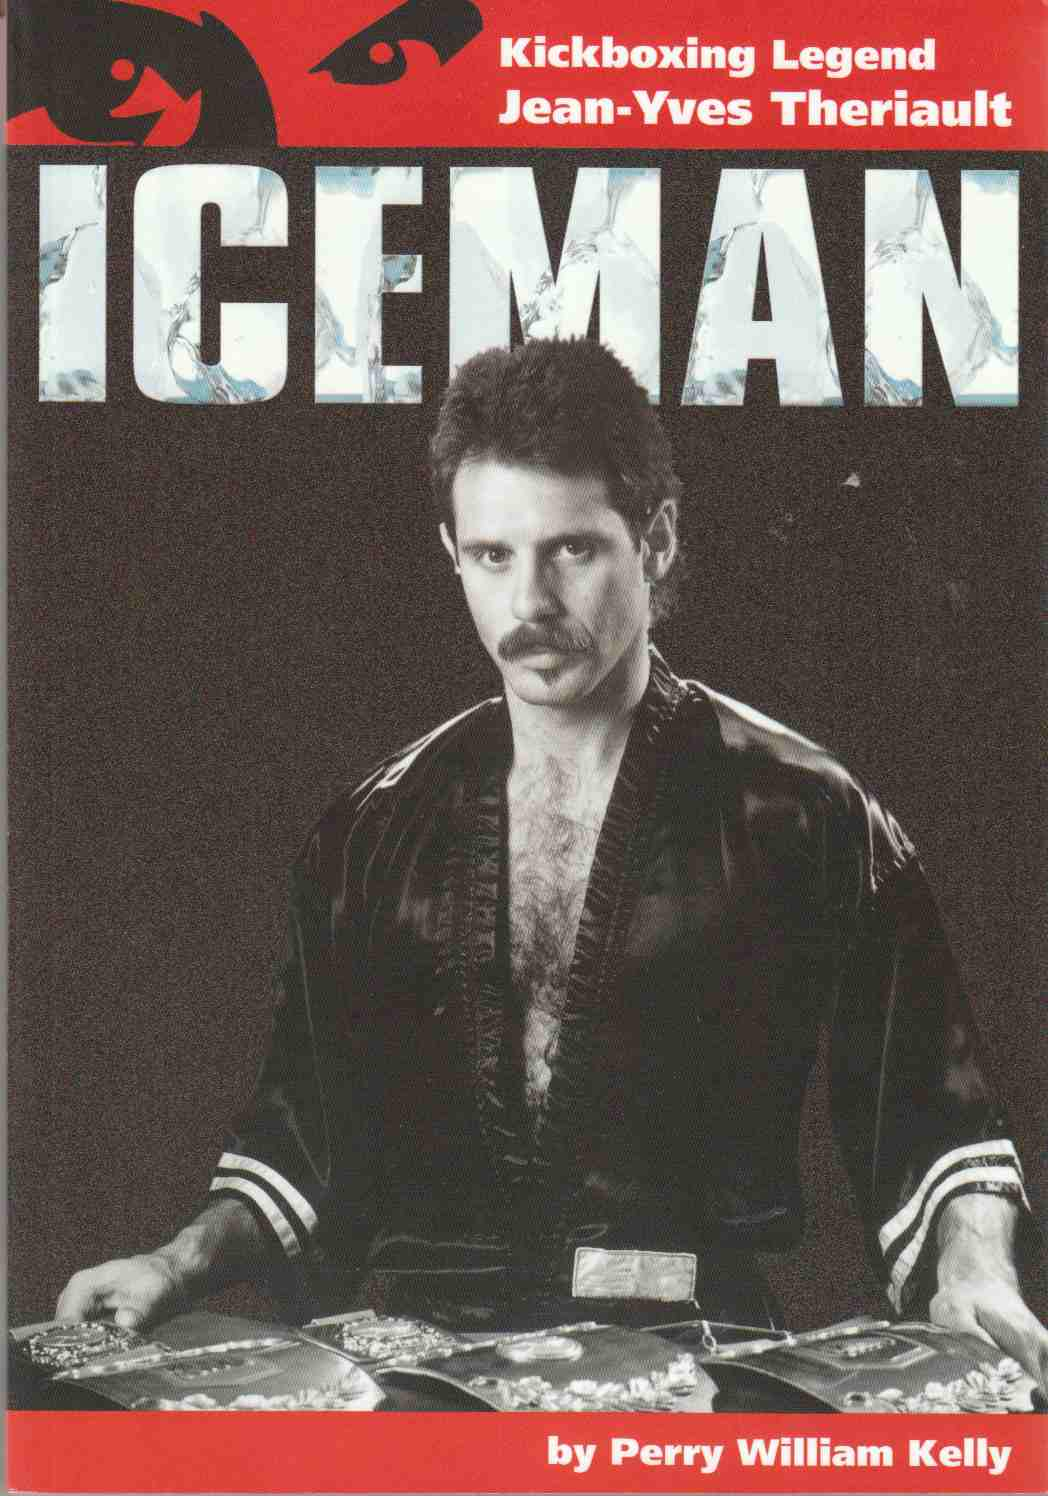 Image for Iceman Kickboxing Legend Jean-Yves Therriault